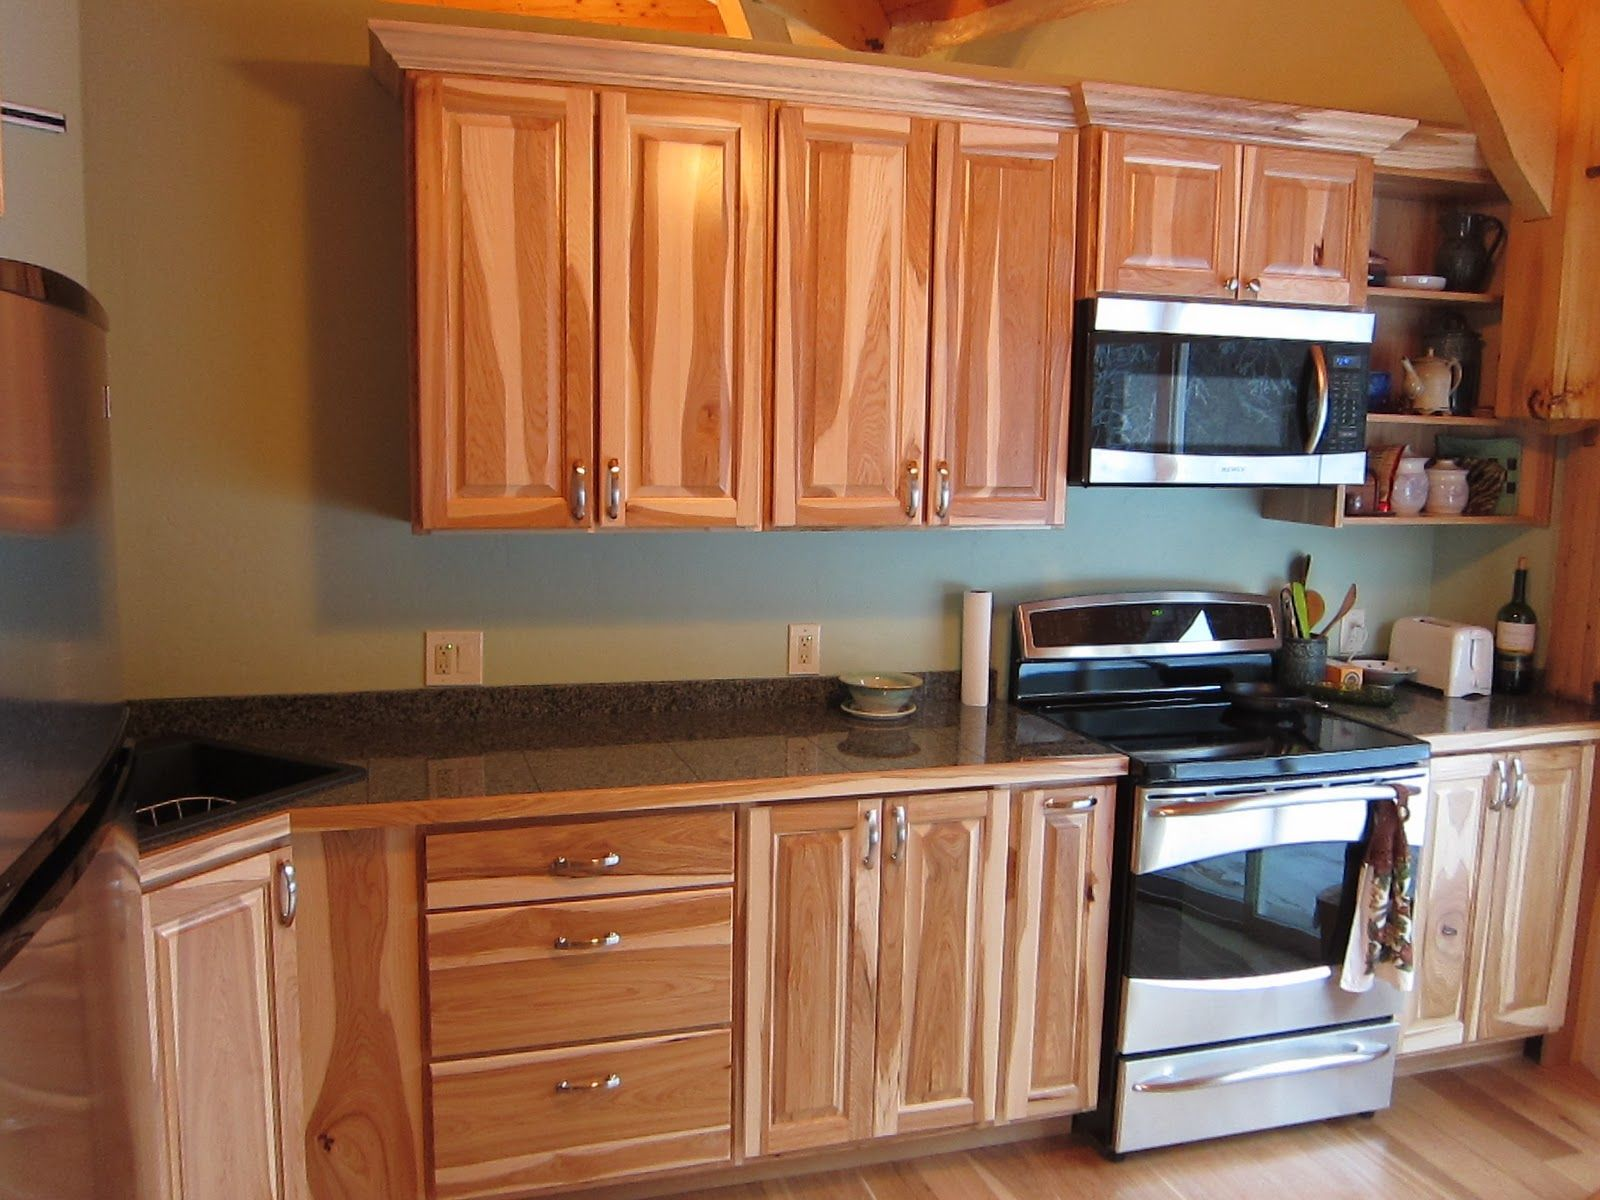 free standing kitchen cabinets Wood kitchen cabinets